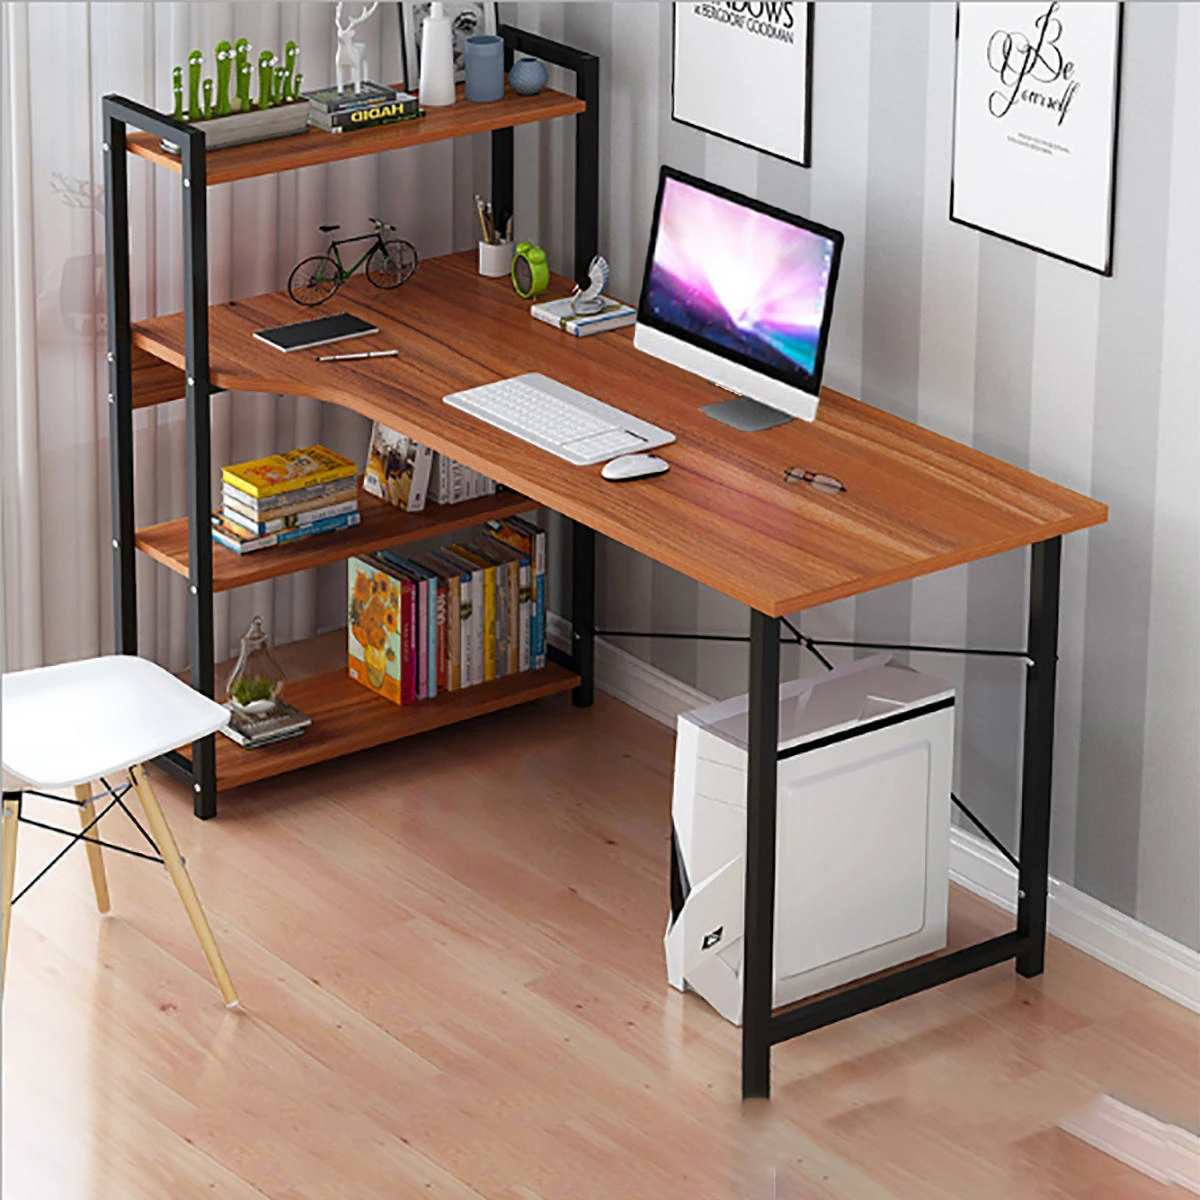 Laptop Desk With Shelves 57 Inch Corner Computer Desk With CPU Stand, Home Office Gaming Table Workstation Study Writing Desk